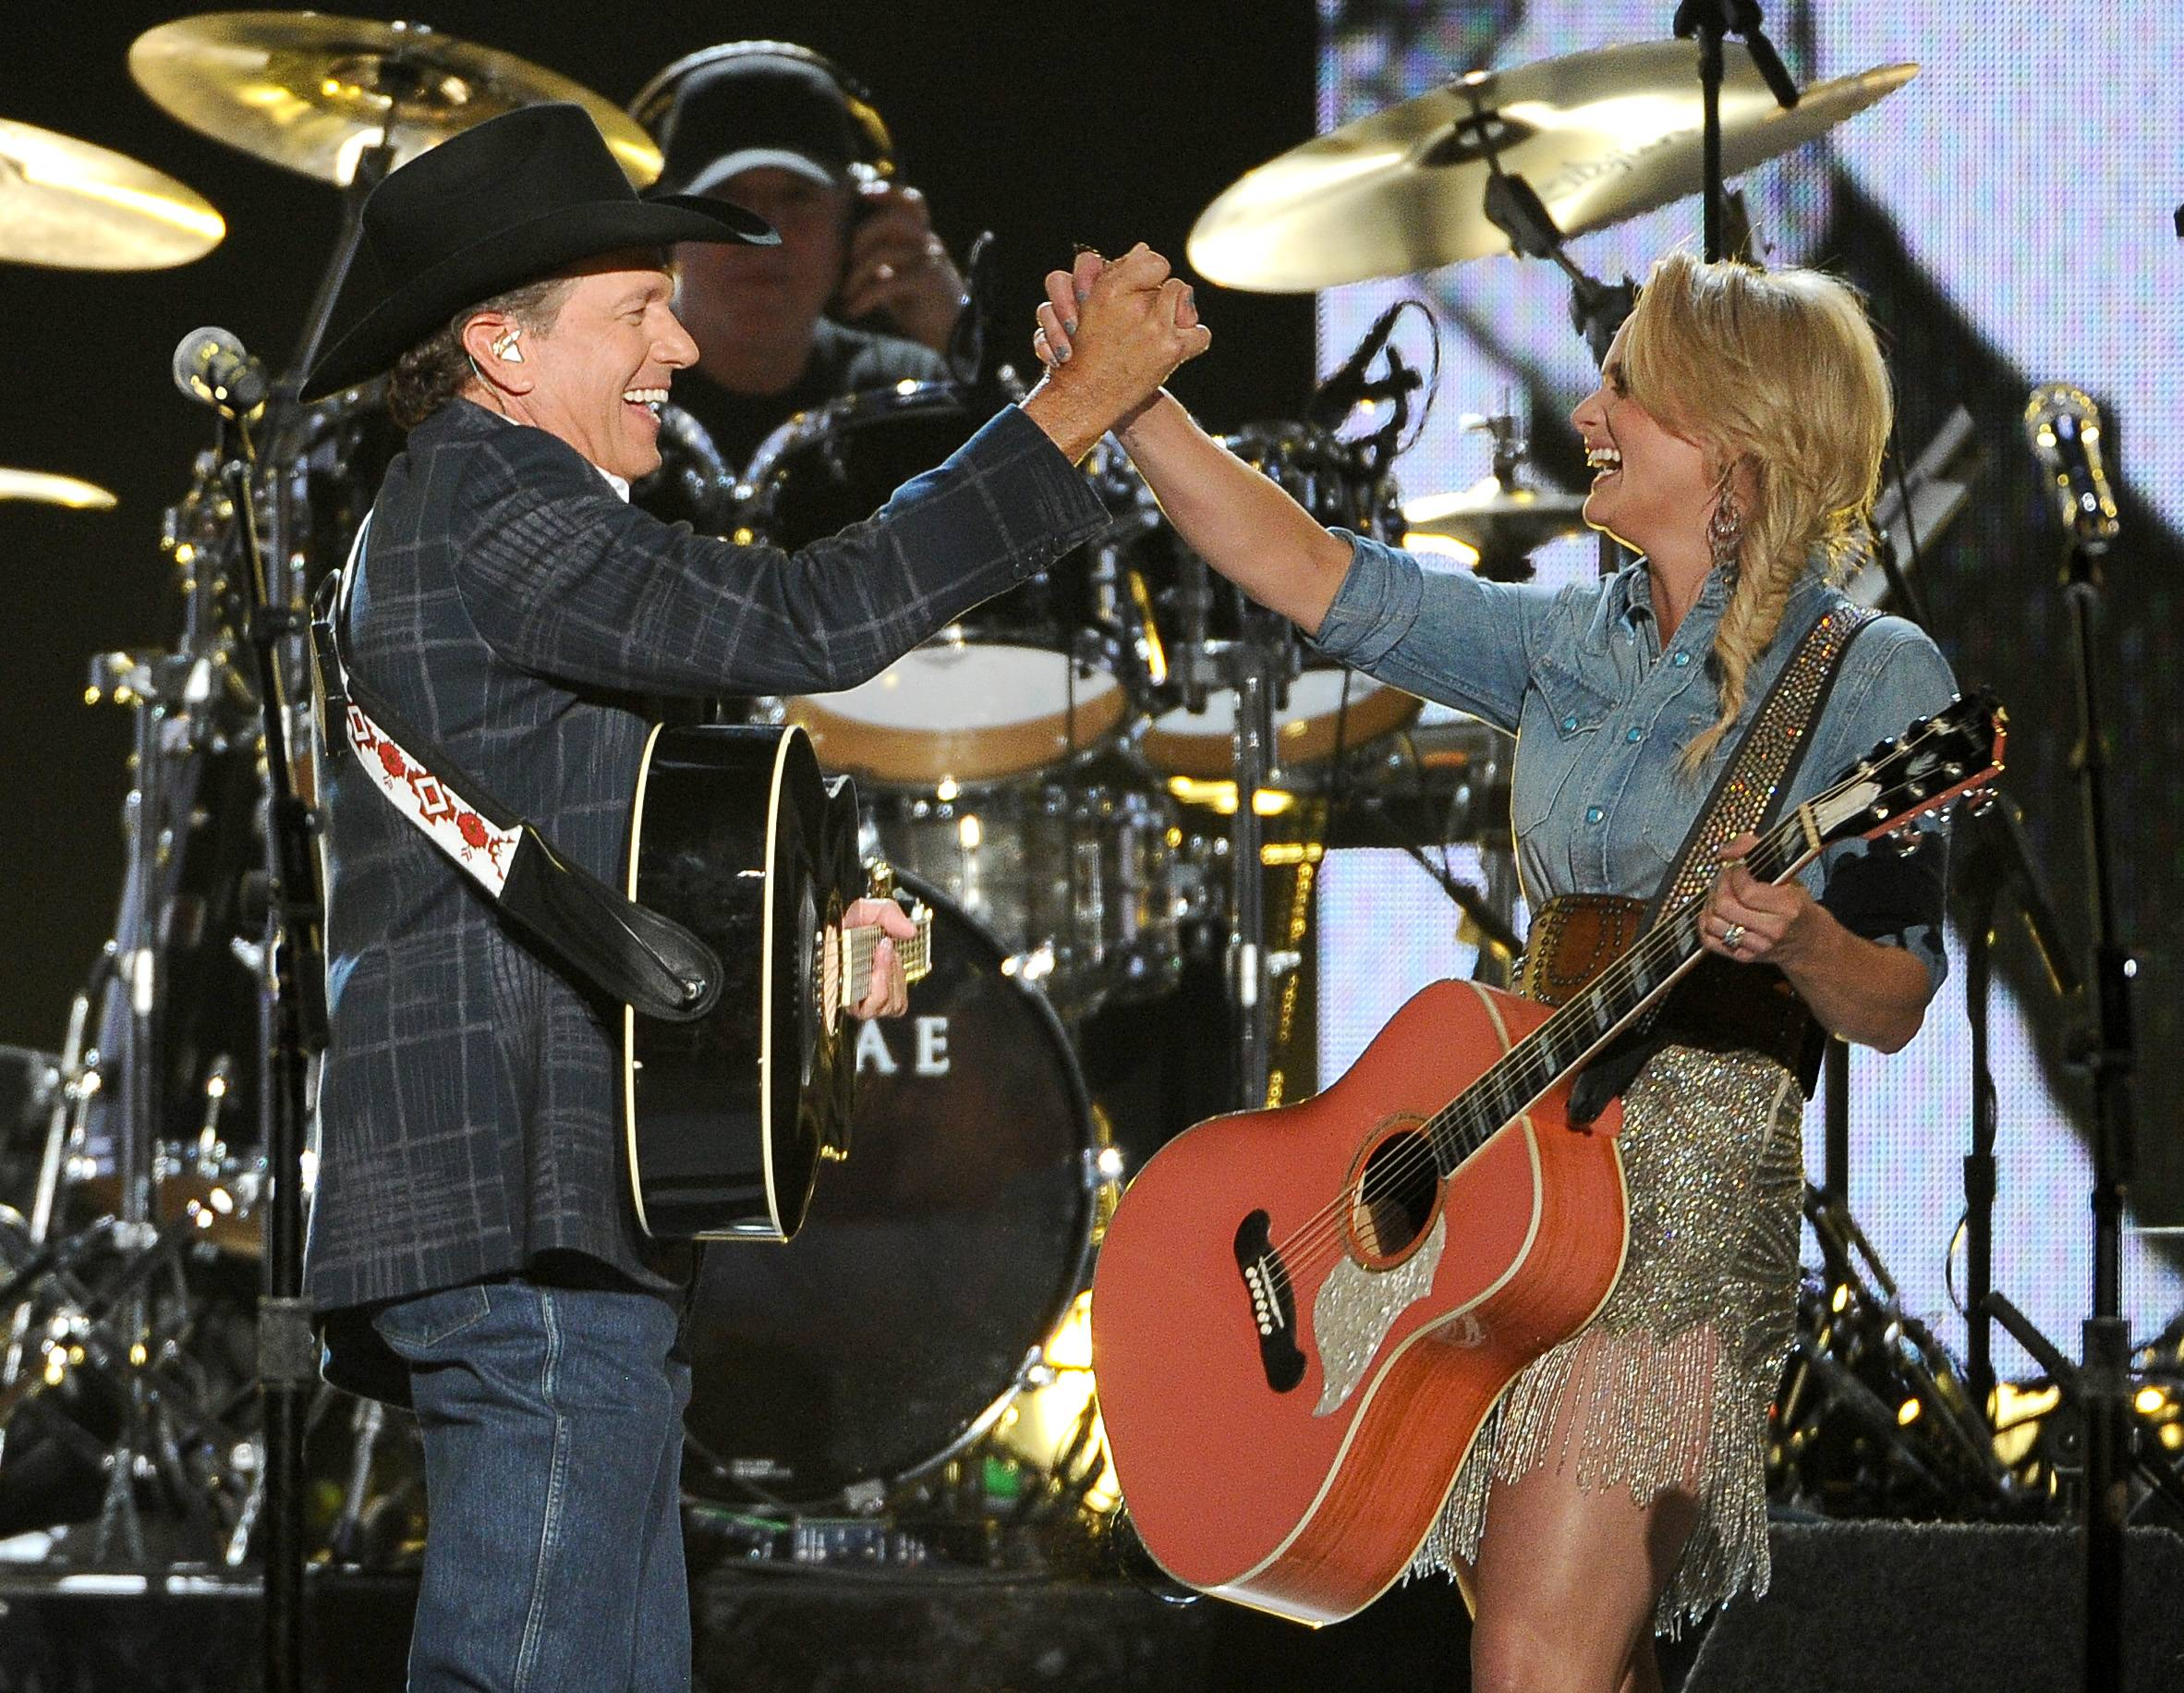 George Strait, left, and Miranda Lambert perform on stage at the 49th annual Academy of Country Music Awards.